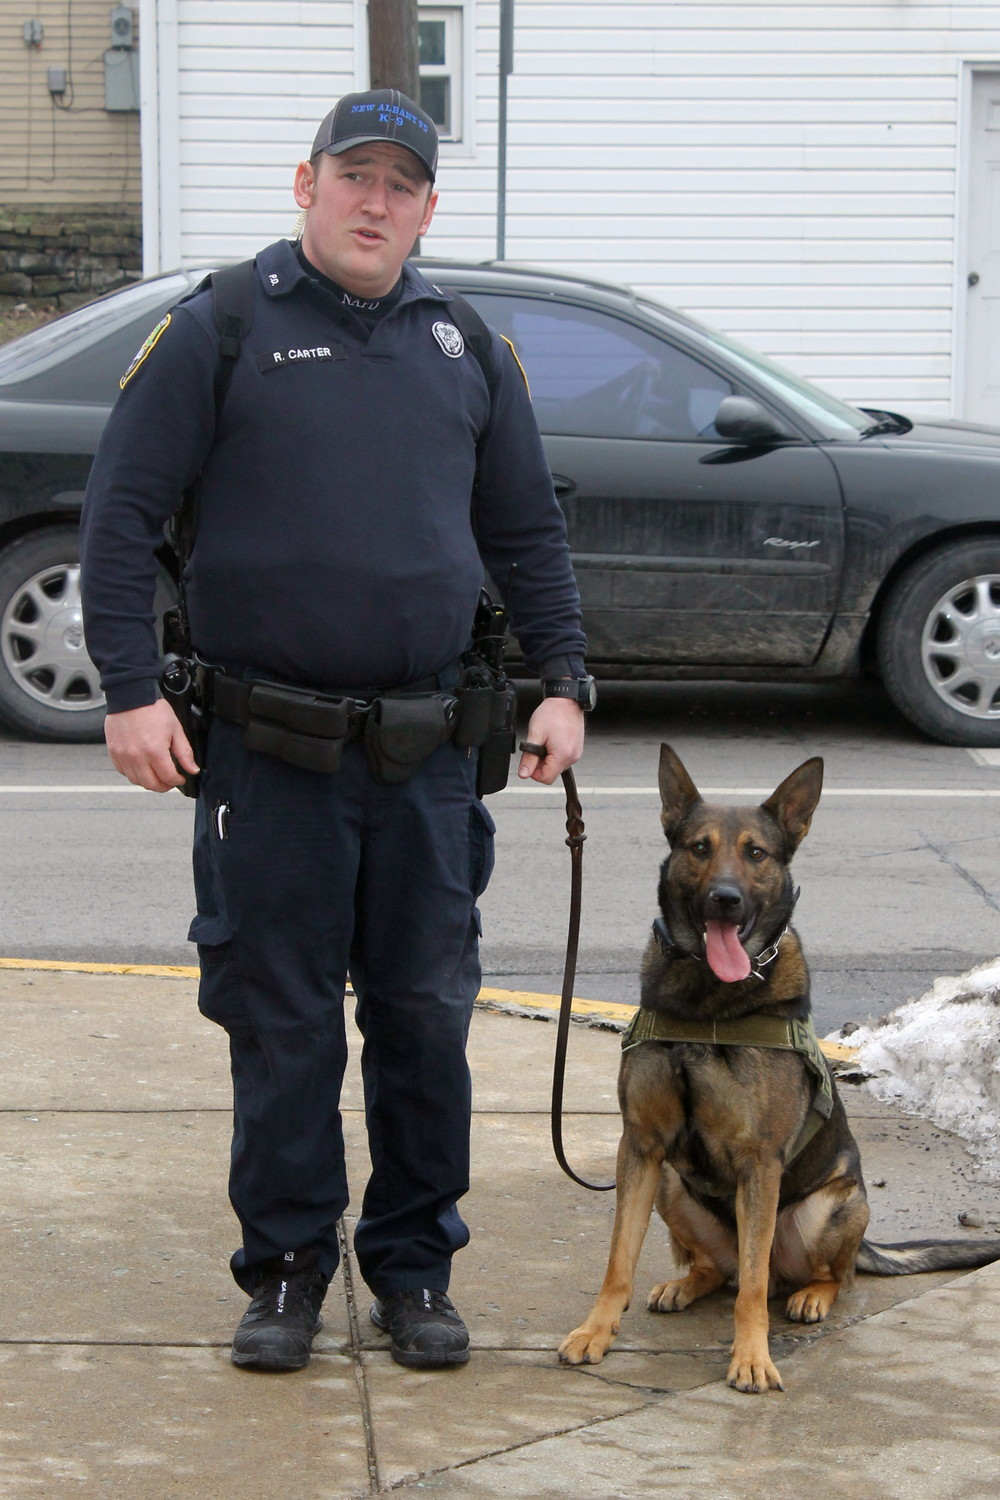 Patrolman Robert Carter and Warro outside the New Albany Police Department.